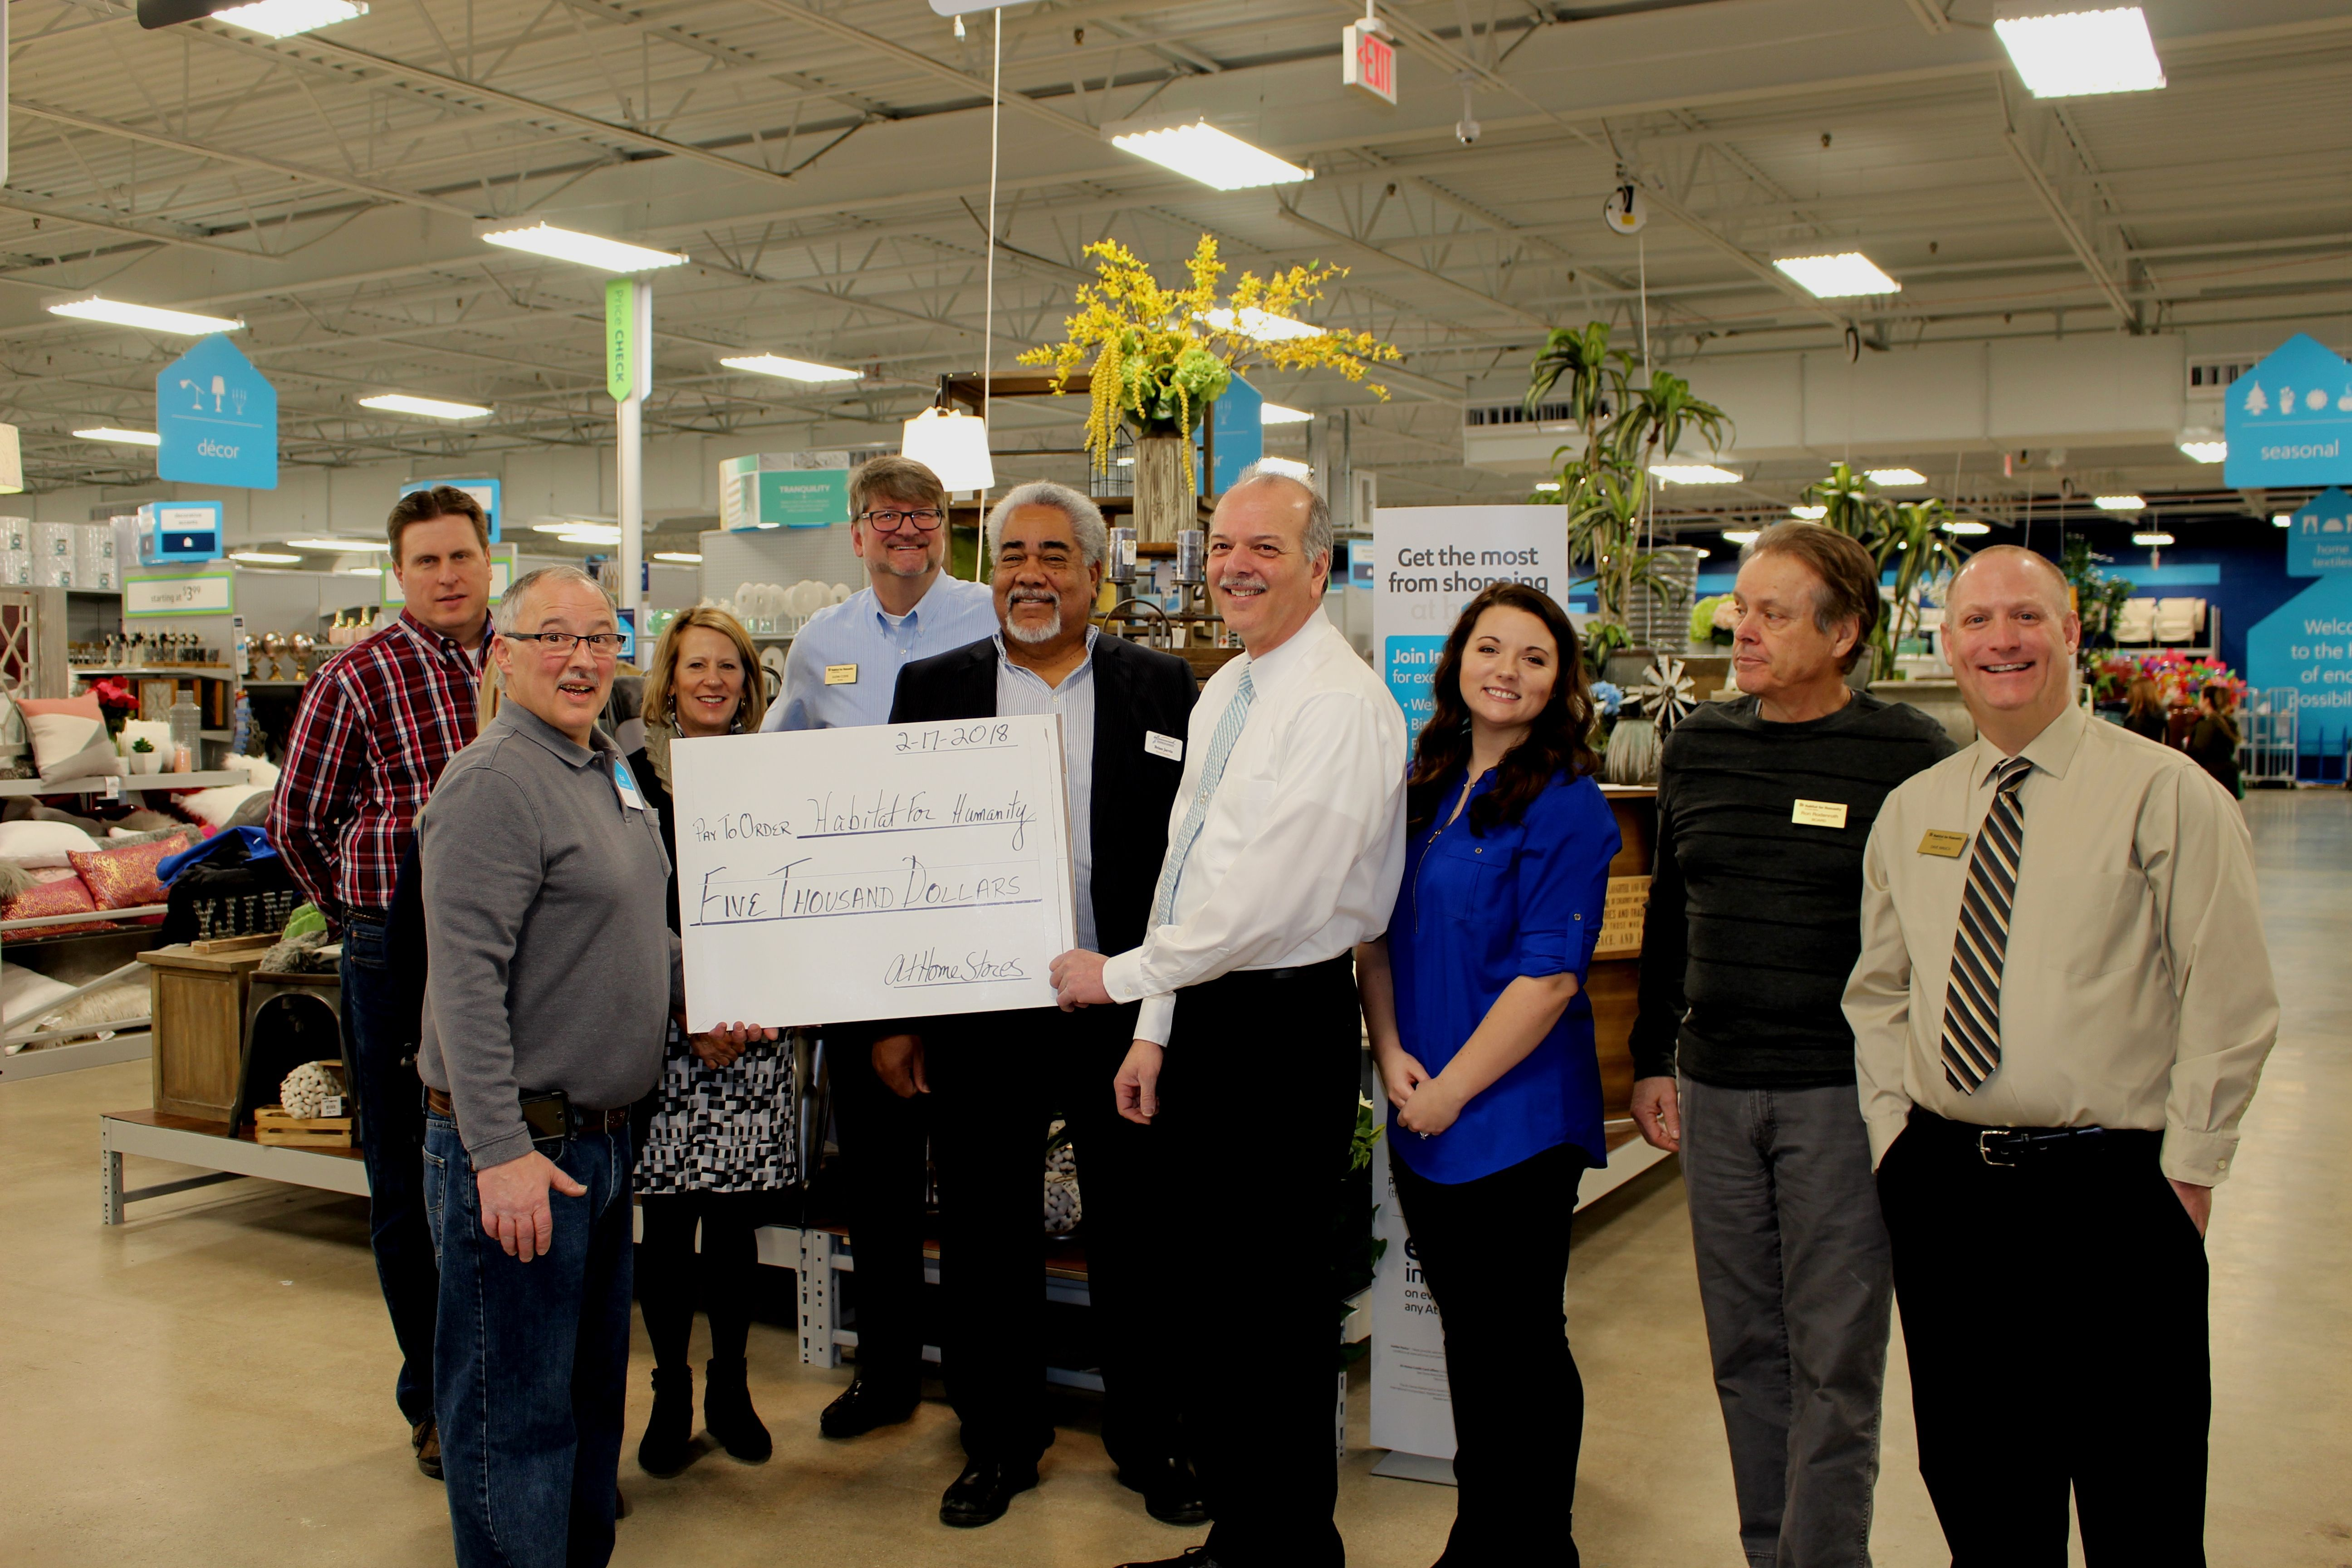 New At Home Store Partners with Habitat for Humanity of Greater Dayton